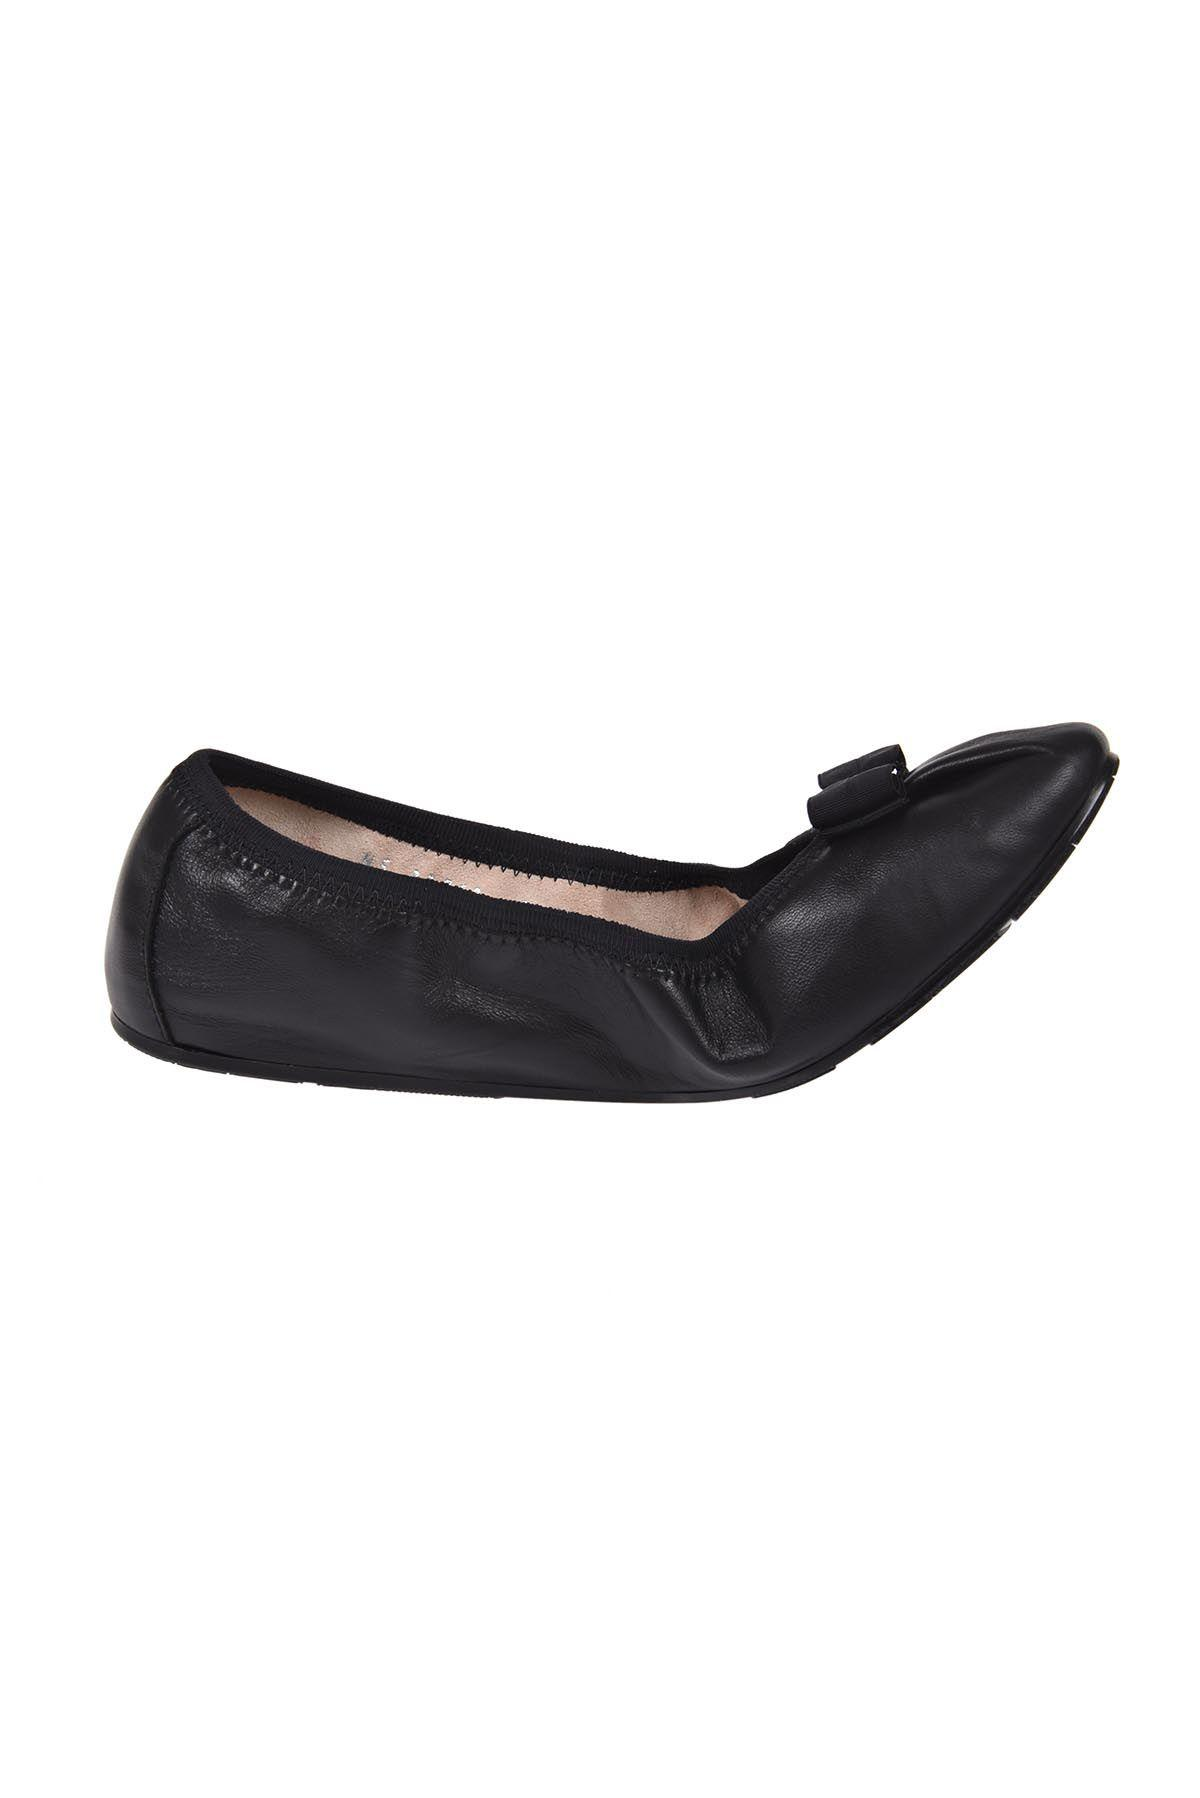 Salvatore Ferragamo My Joy Ballerinas In Black